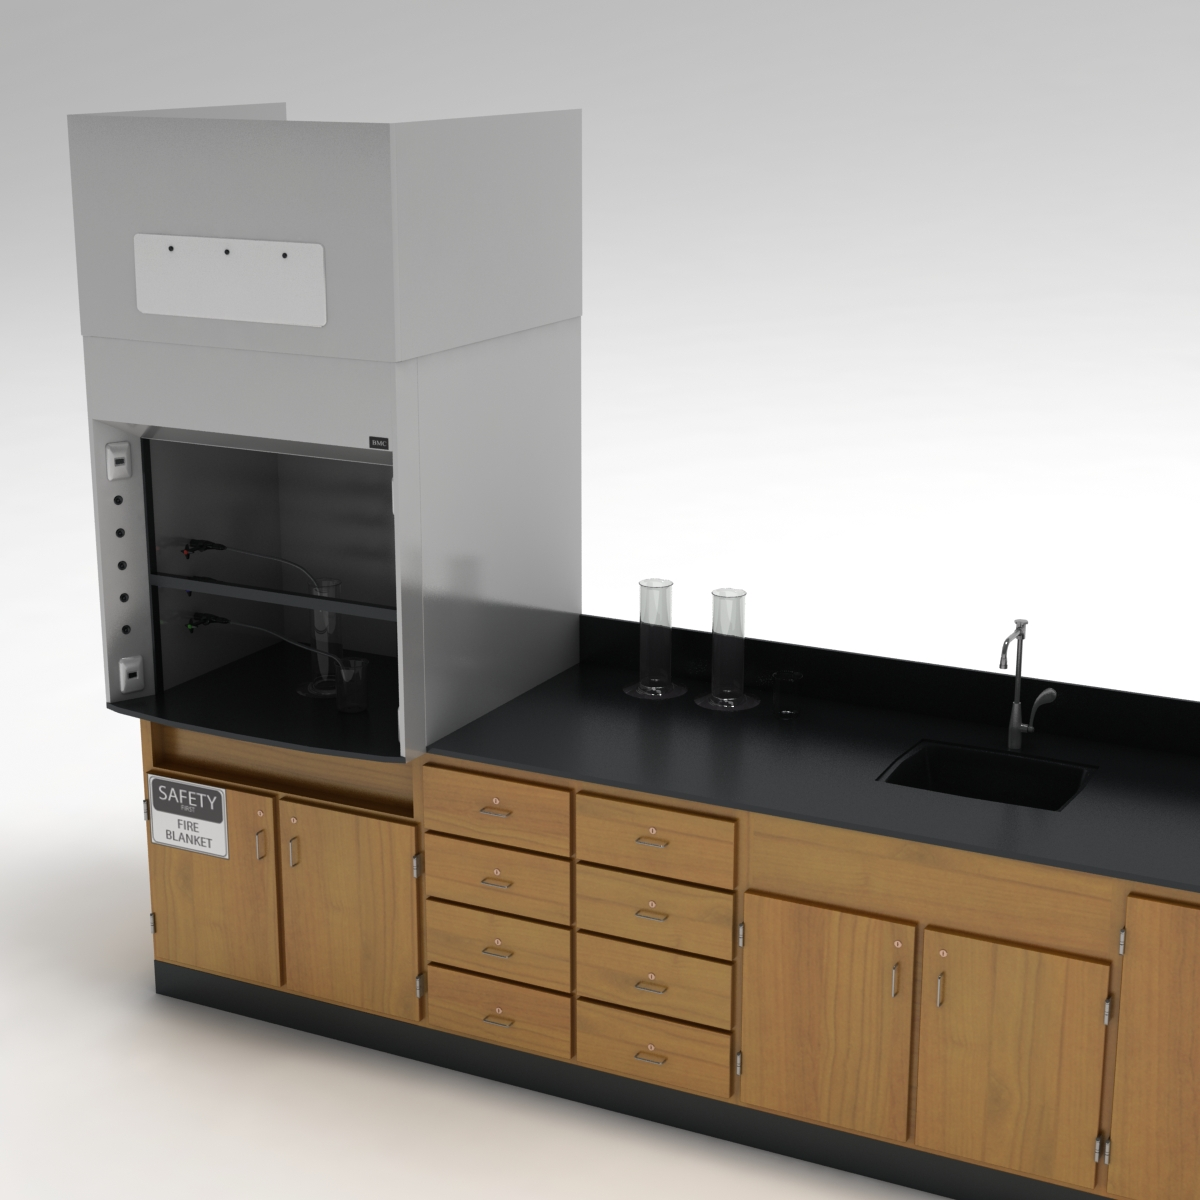 Laboratory table 02 3d model for Table th 00 02